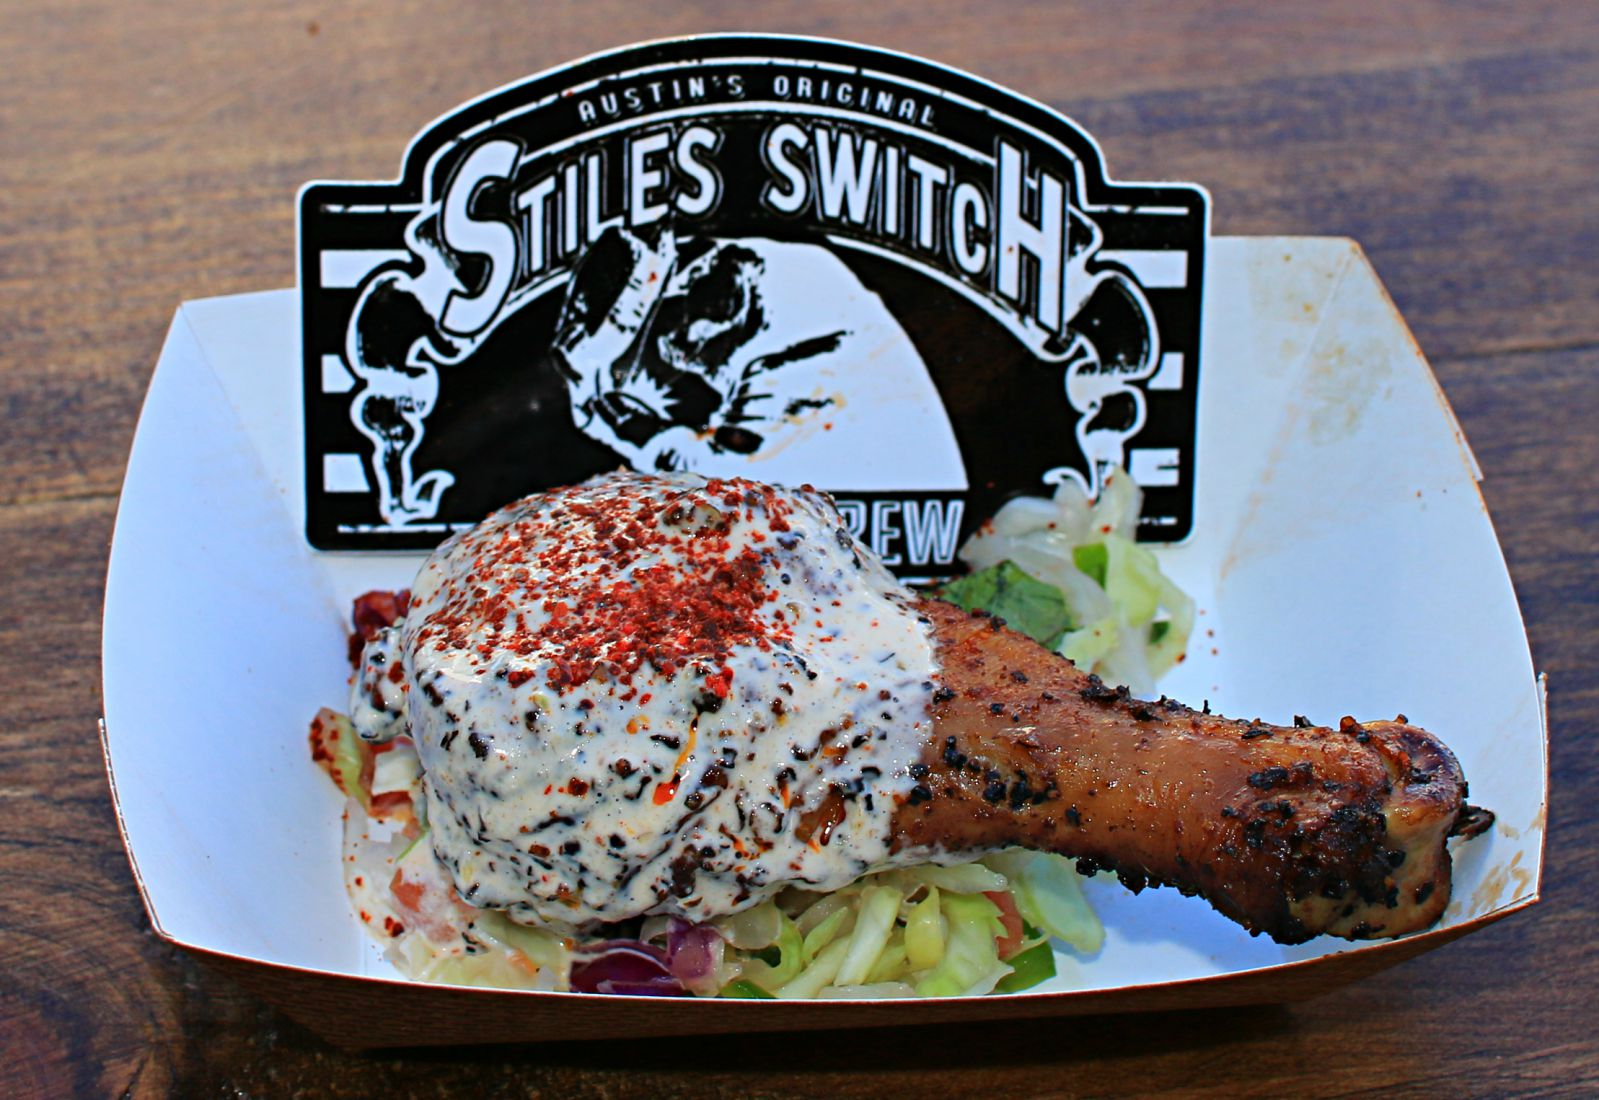 Smoked chicken with Alabama white sauce from Stiles Switch at Texas Monthly BBQ Fest 2016